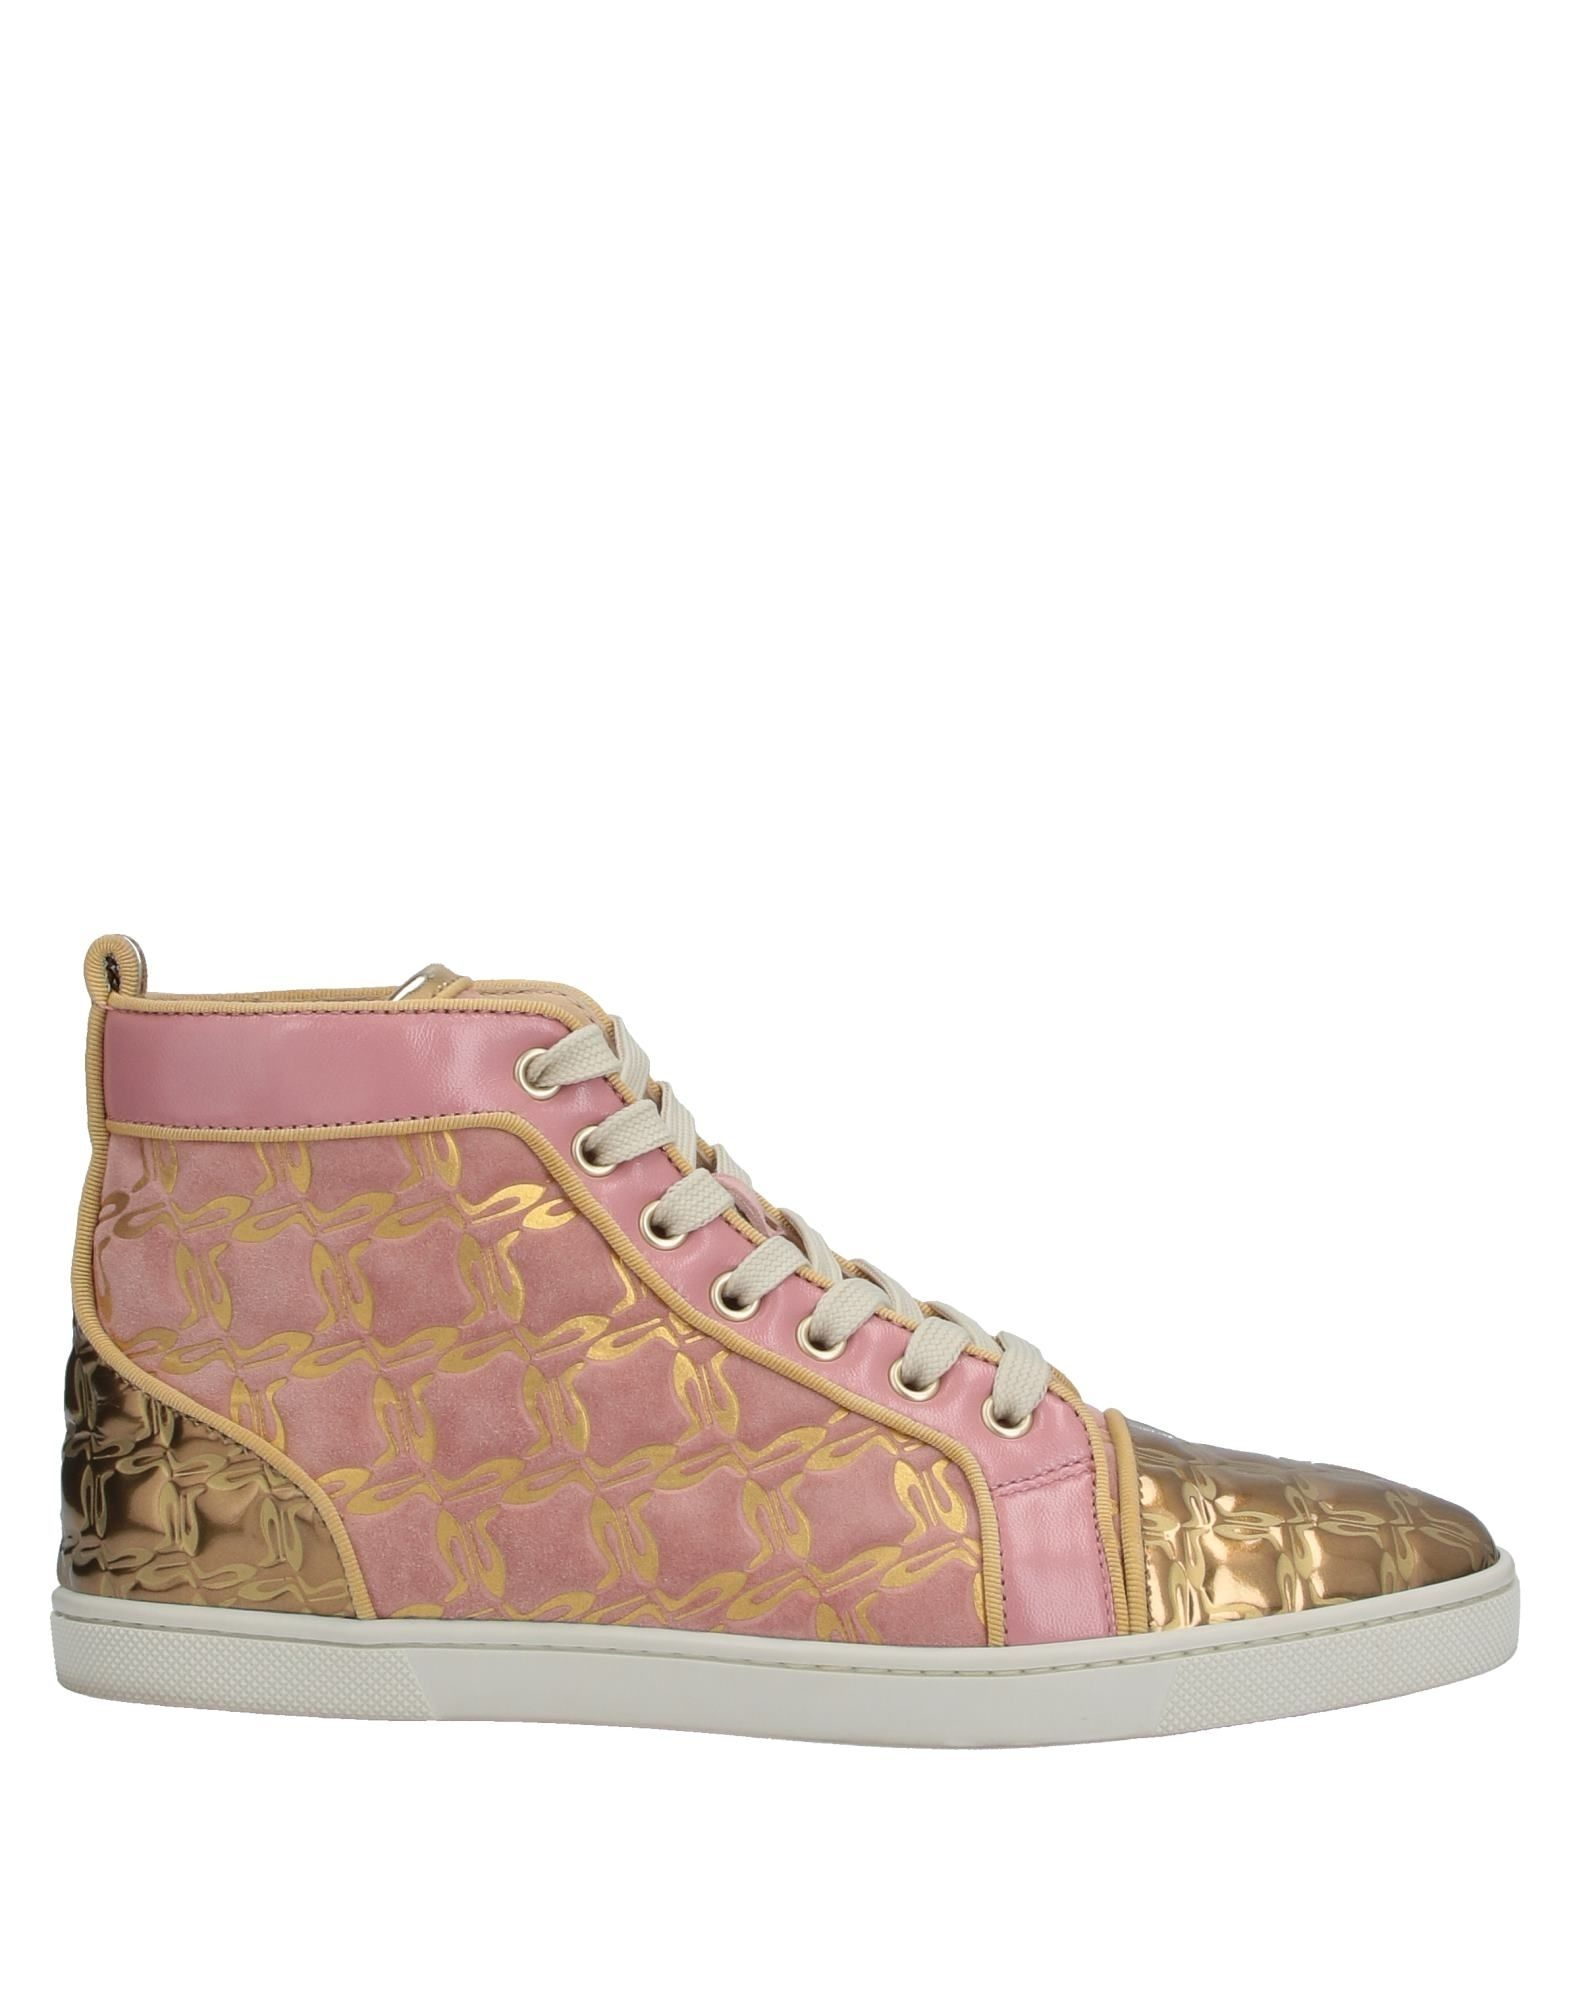 CHRISTIAN LOUBOUTIN Sneakers. laminated effect, no appliqués, two-tone, laces, round toeline, flat, leather lining, rubber sole, contains non-textile parts of animal origin, small sized. Soft Leather